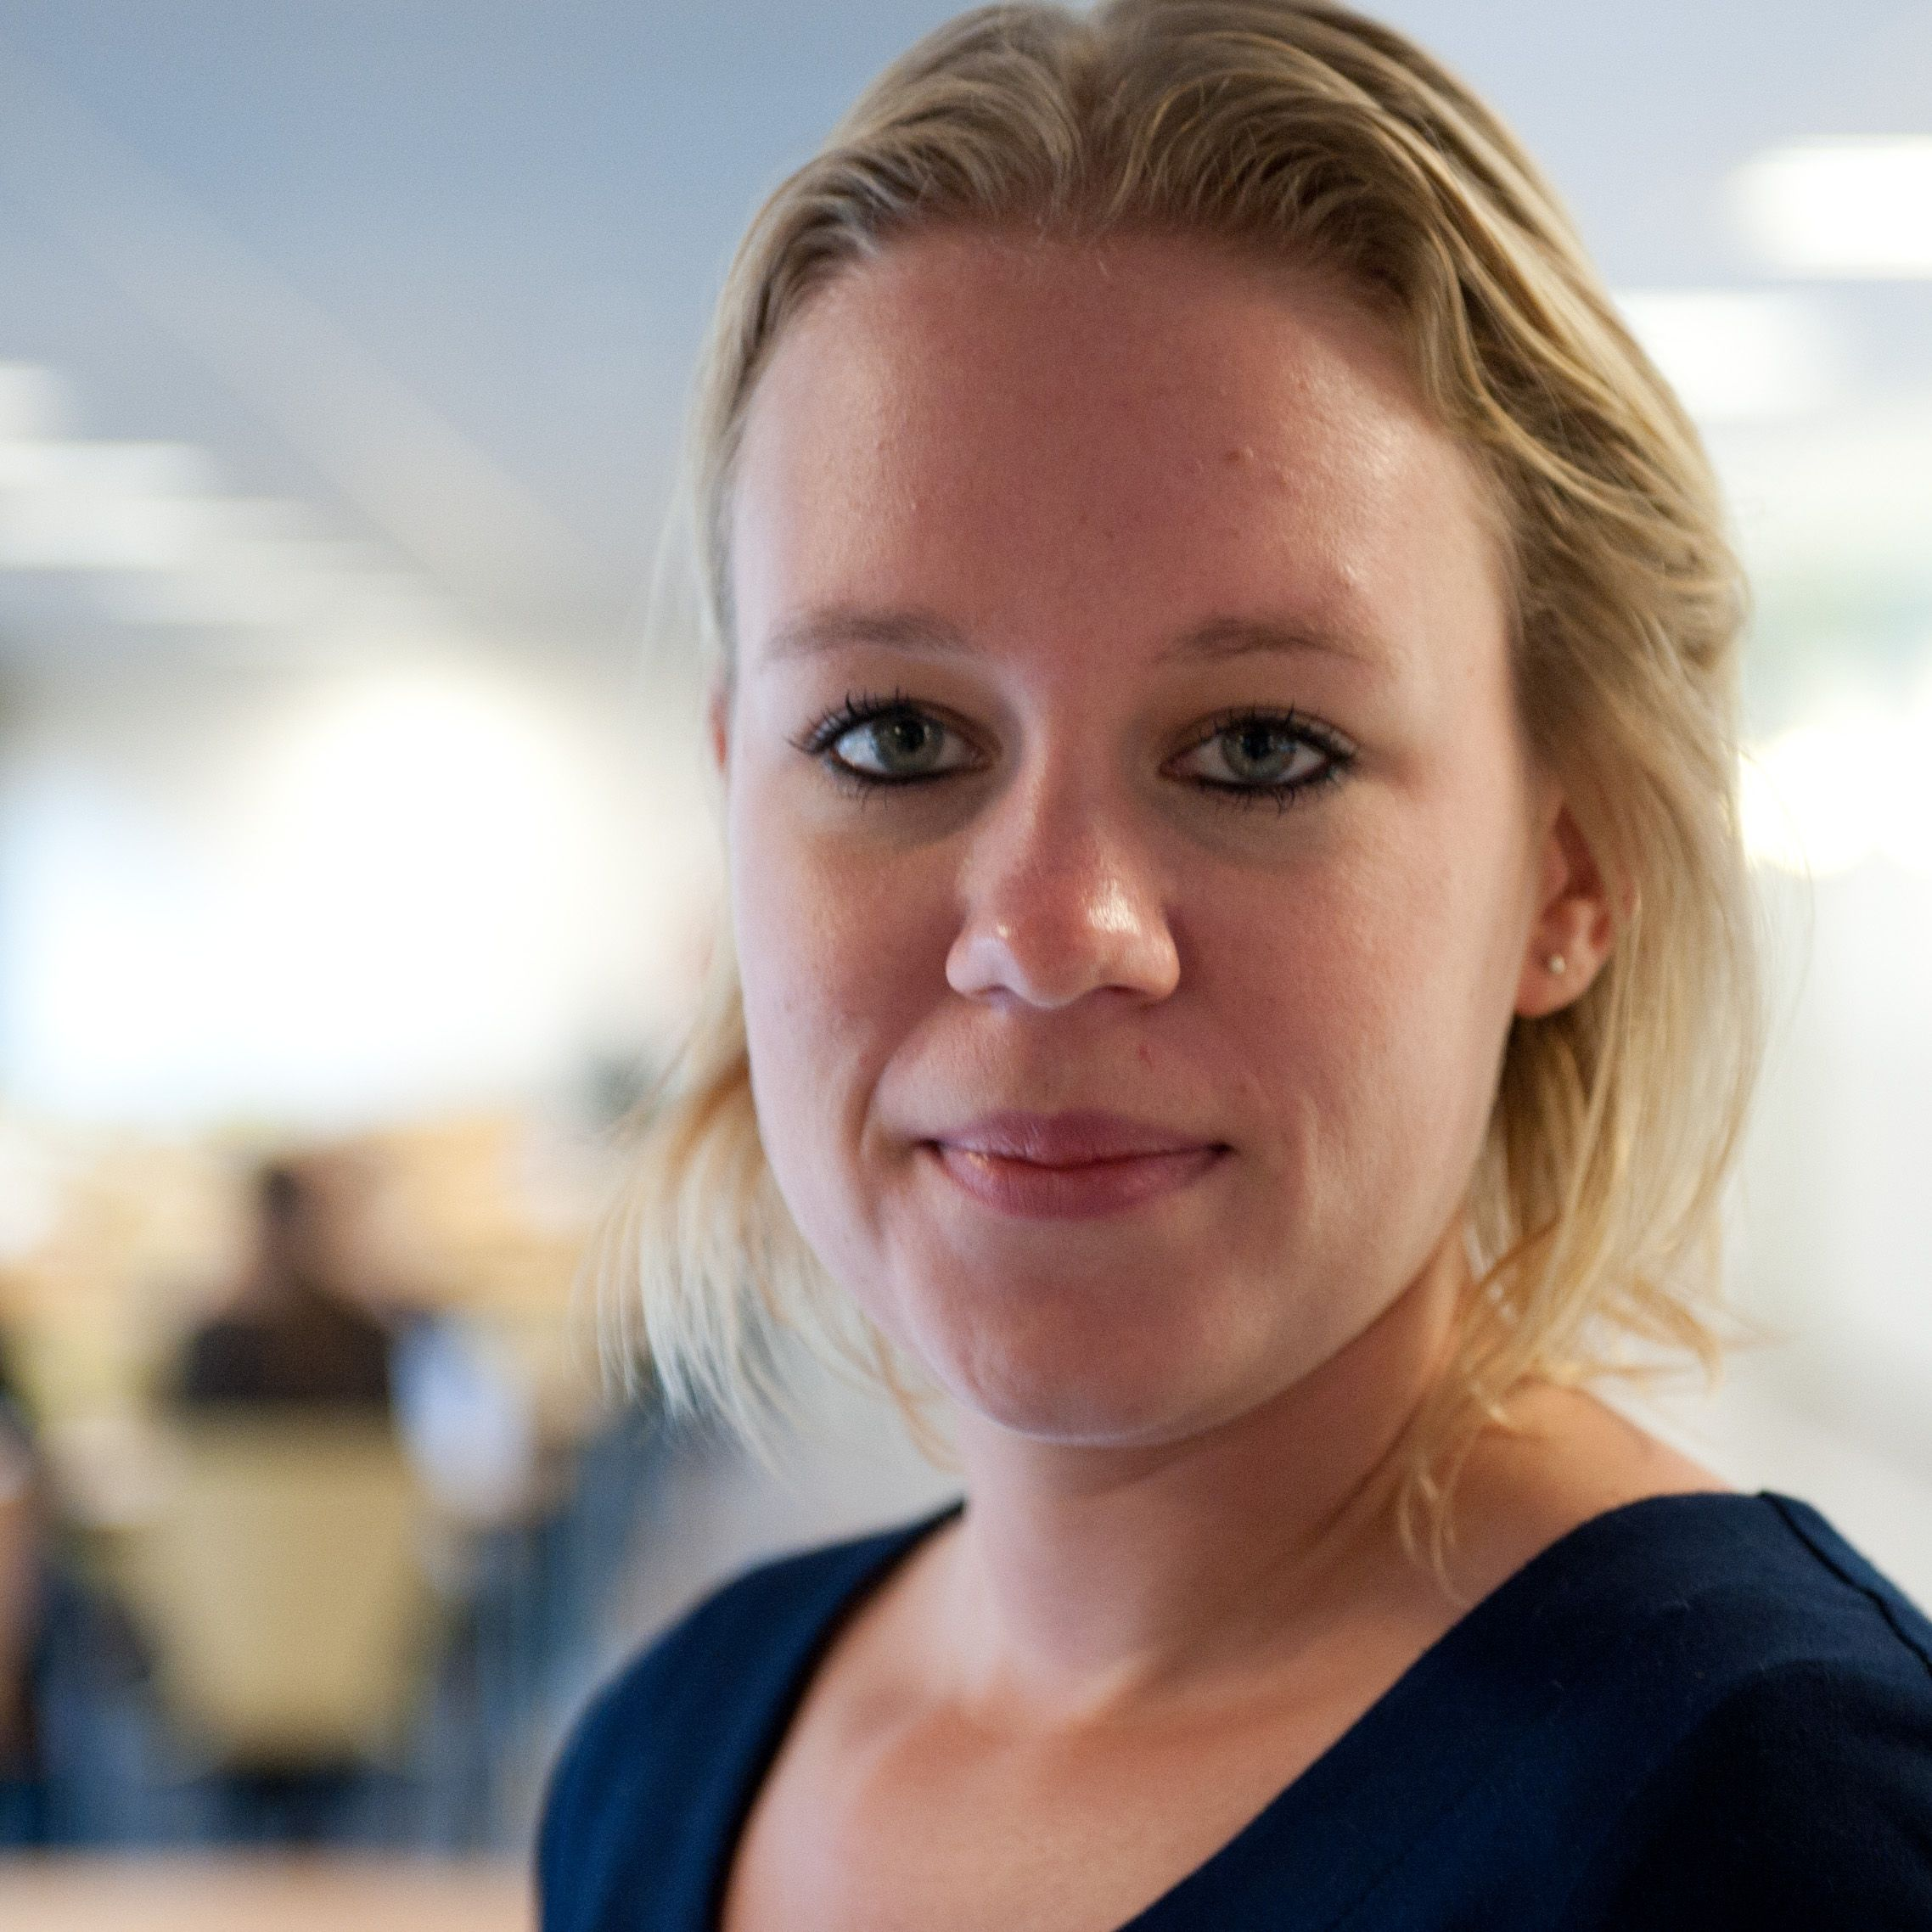 Jellie Sierksma : Assistant professor at Social Psychology